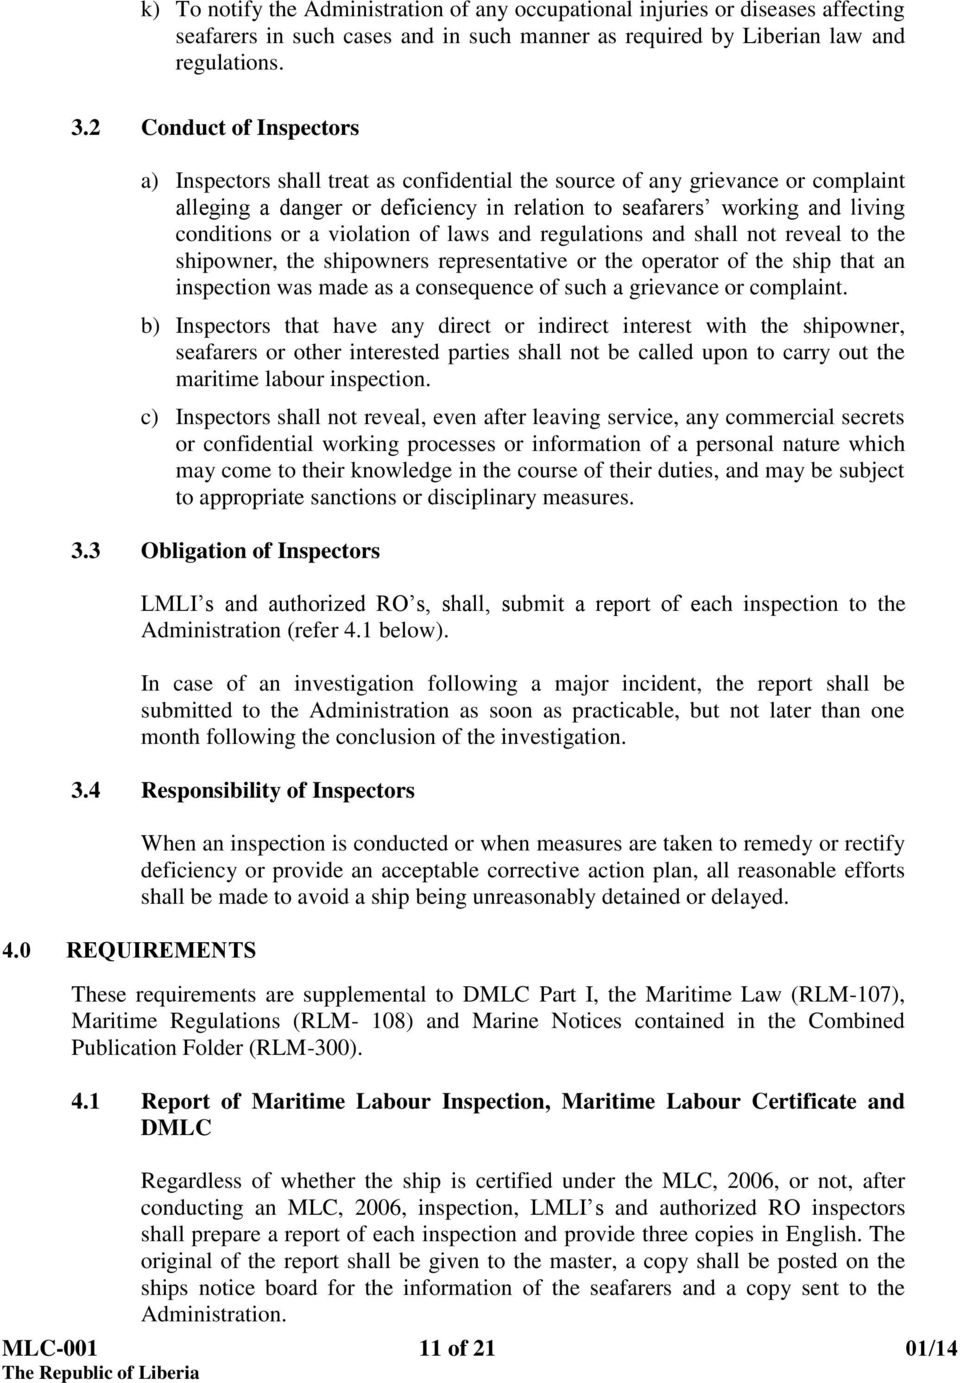 violation of laws and regulations and shall not reveal to the shipowner, the shipowners representative or the operator of the ship that an inspection was made as a consequence of such a grievance or